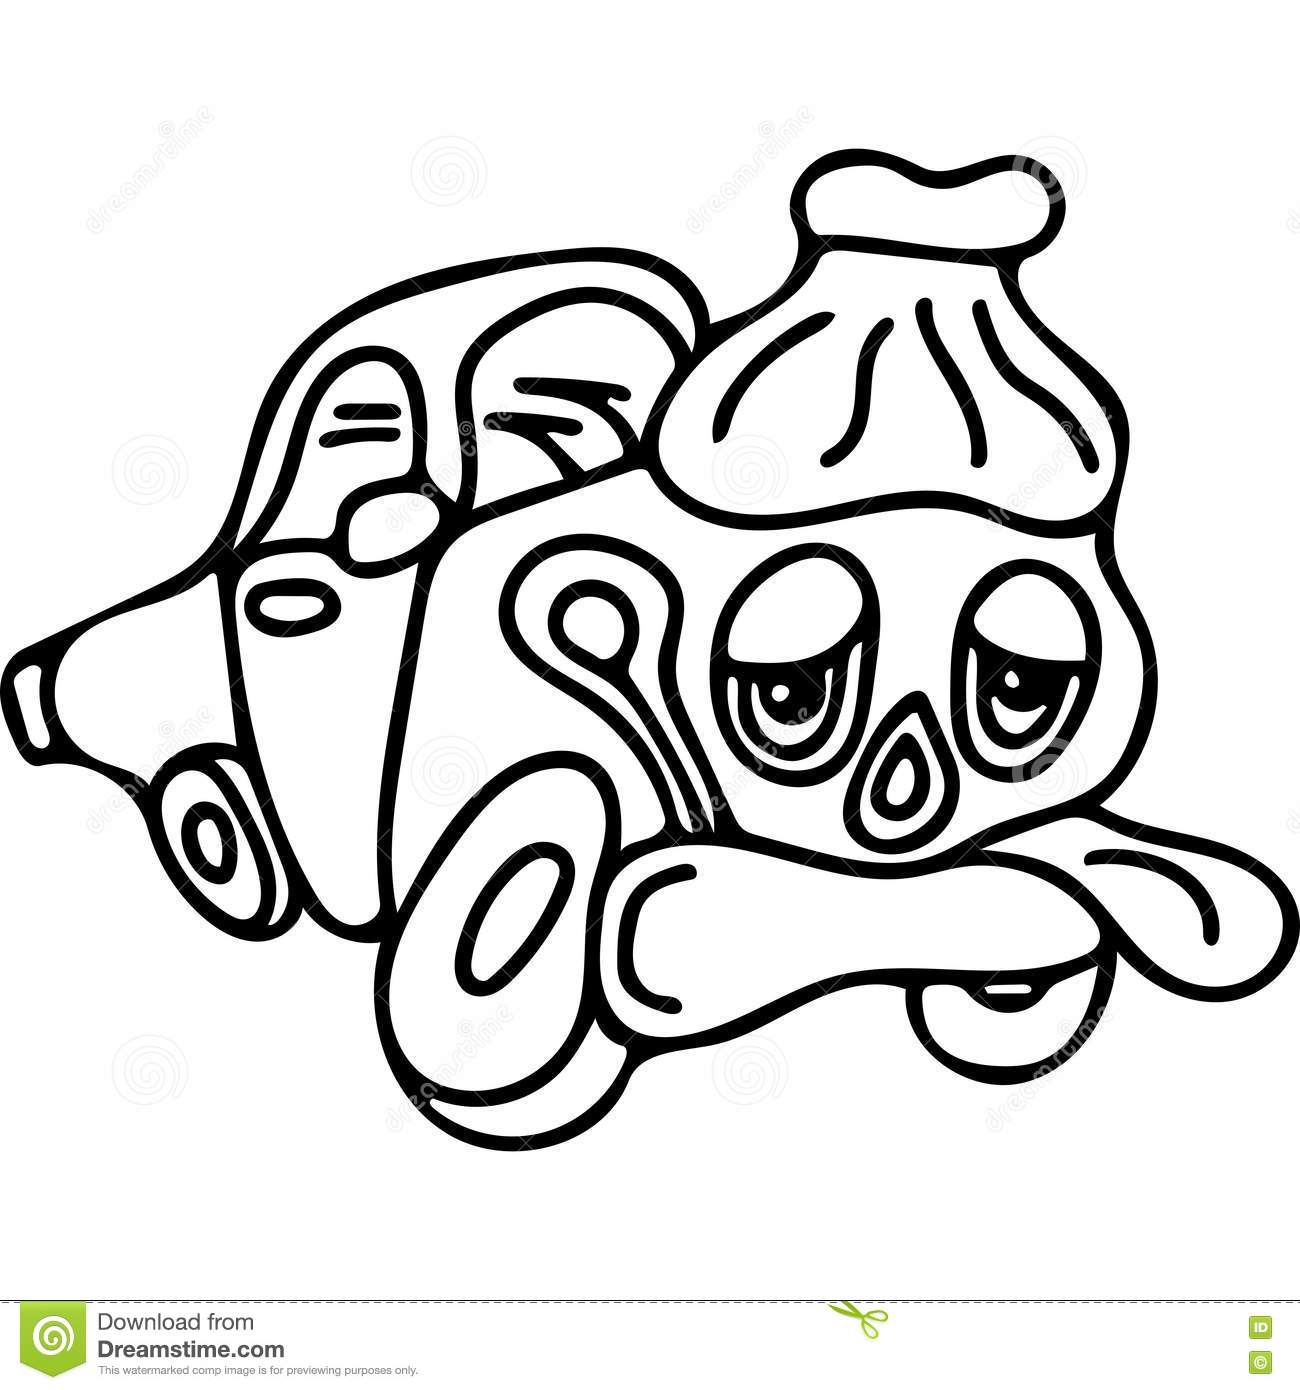 Sick car kids coloring page stock illustration for Sick coloring pages